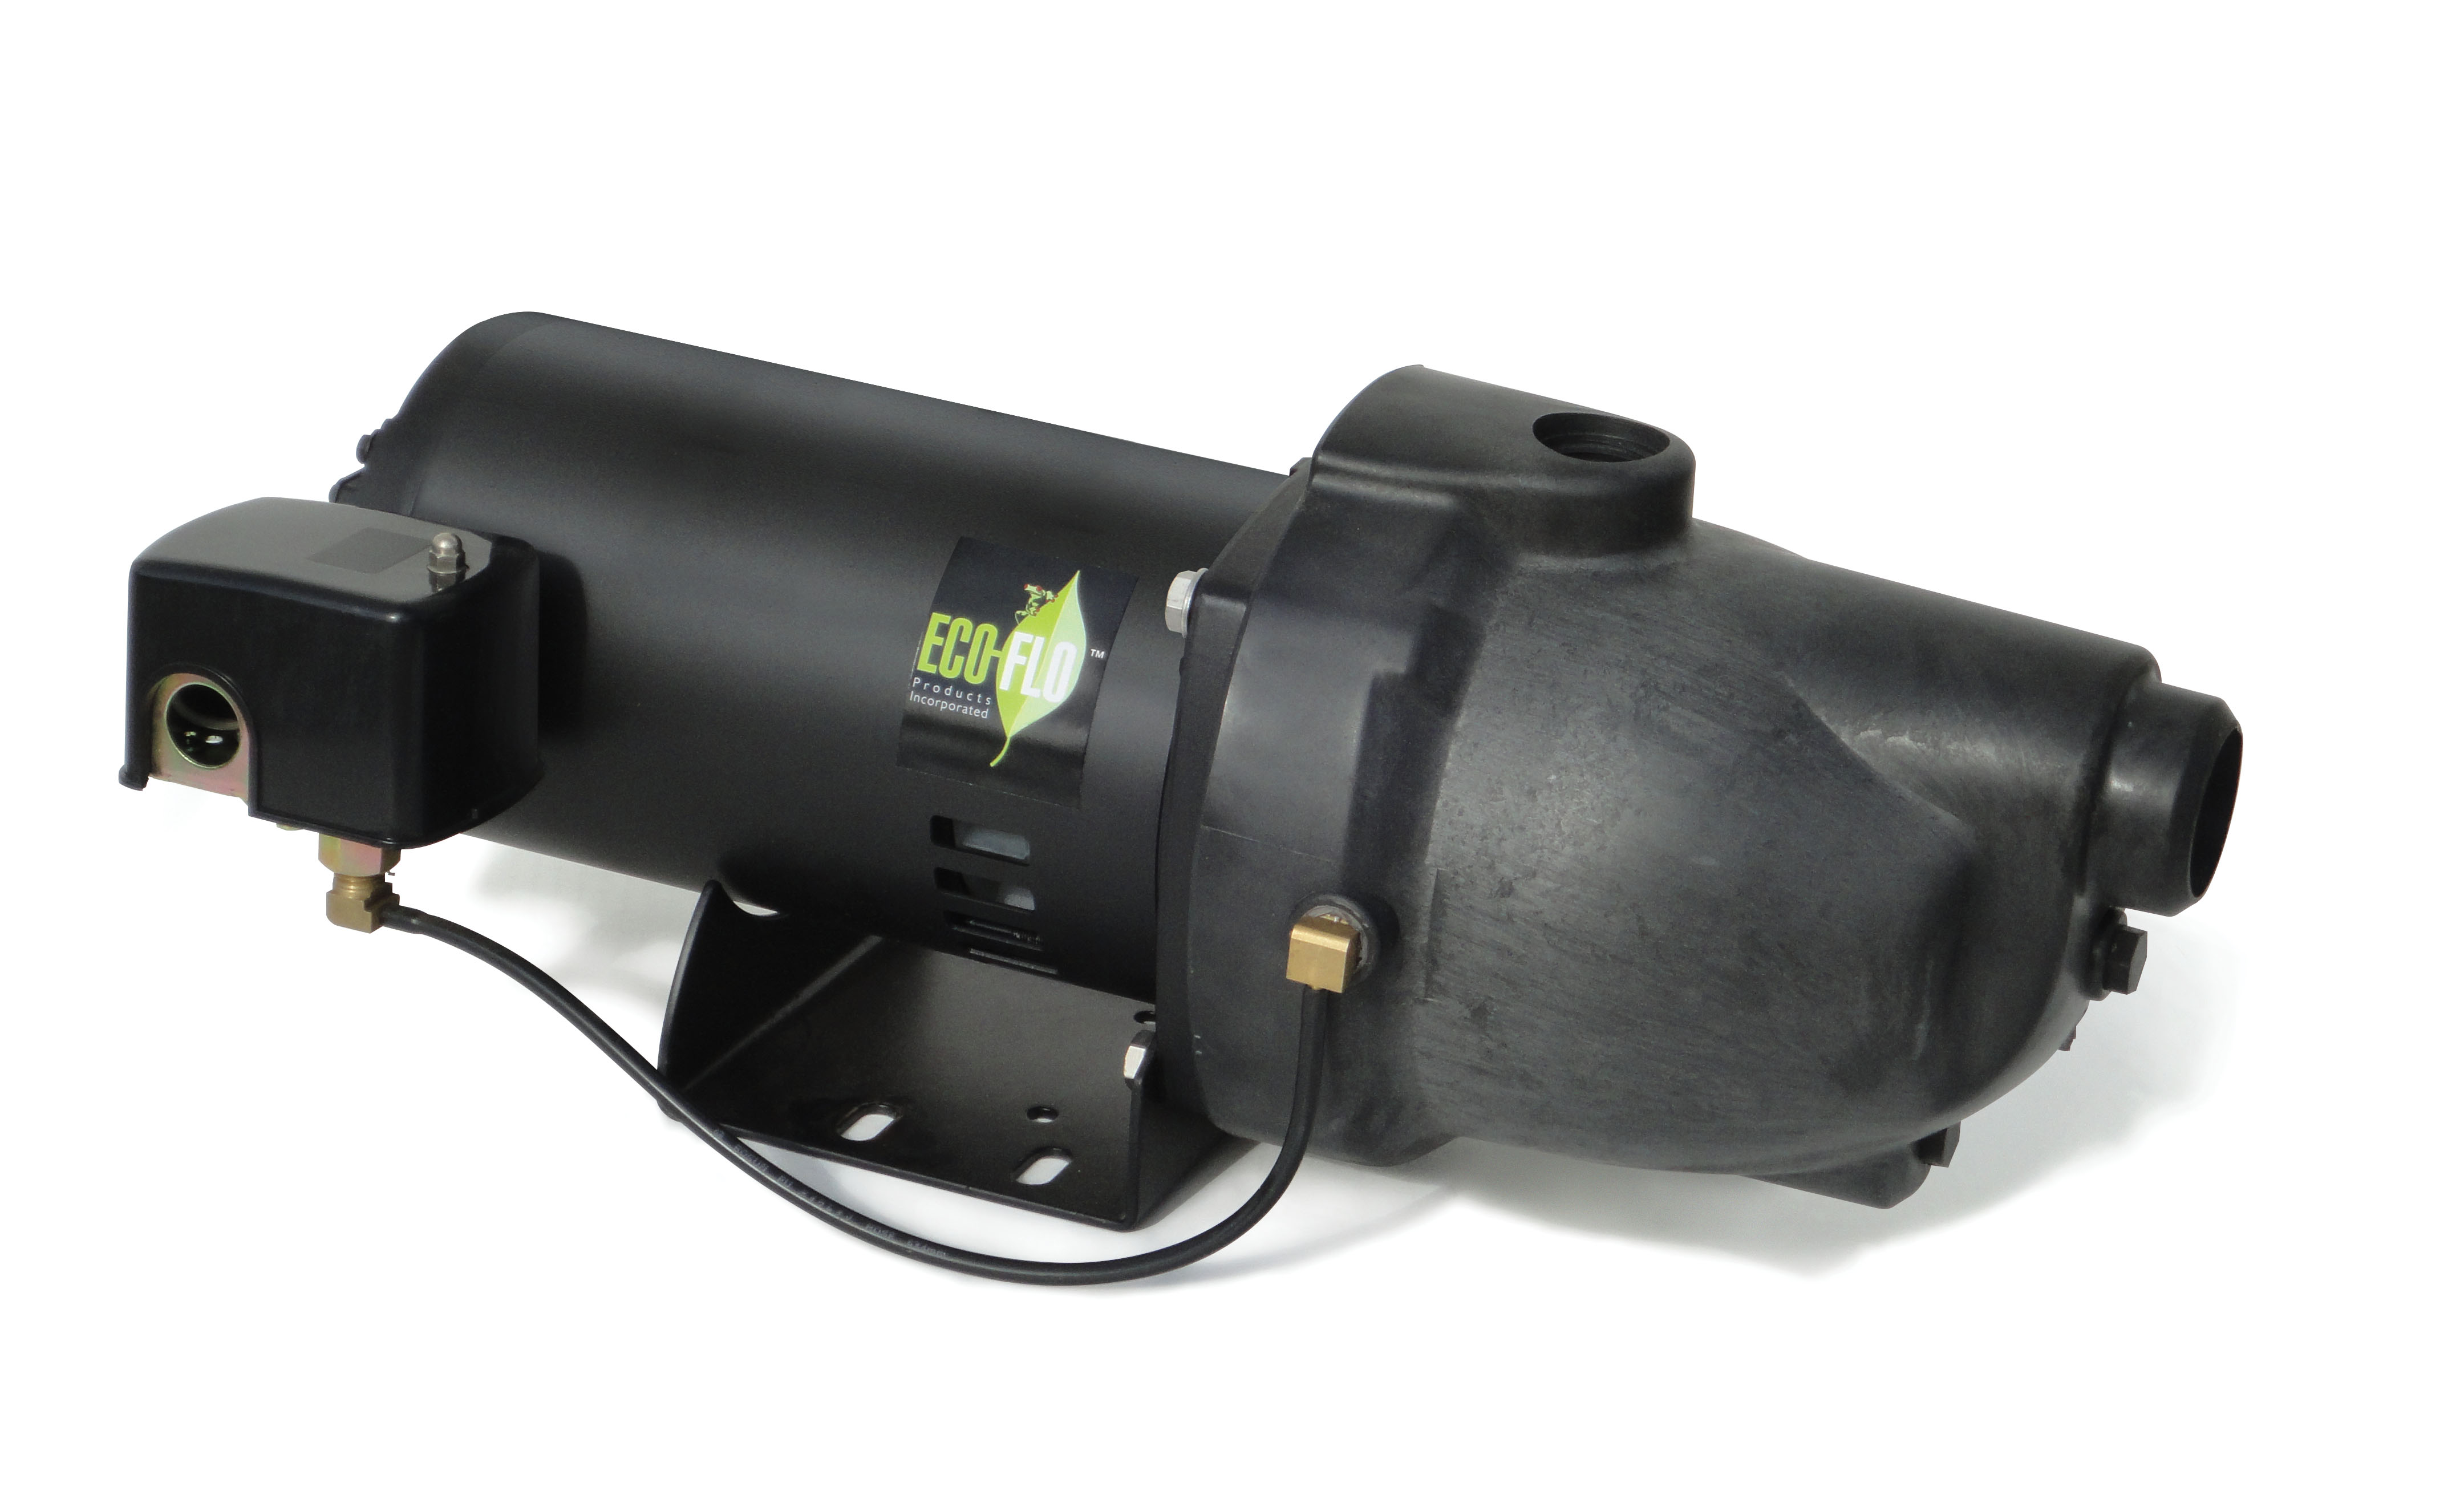 Eco flo 1 2 hp plastic shallow well jet pump tools pumps utility